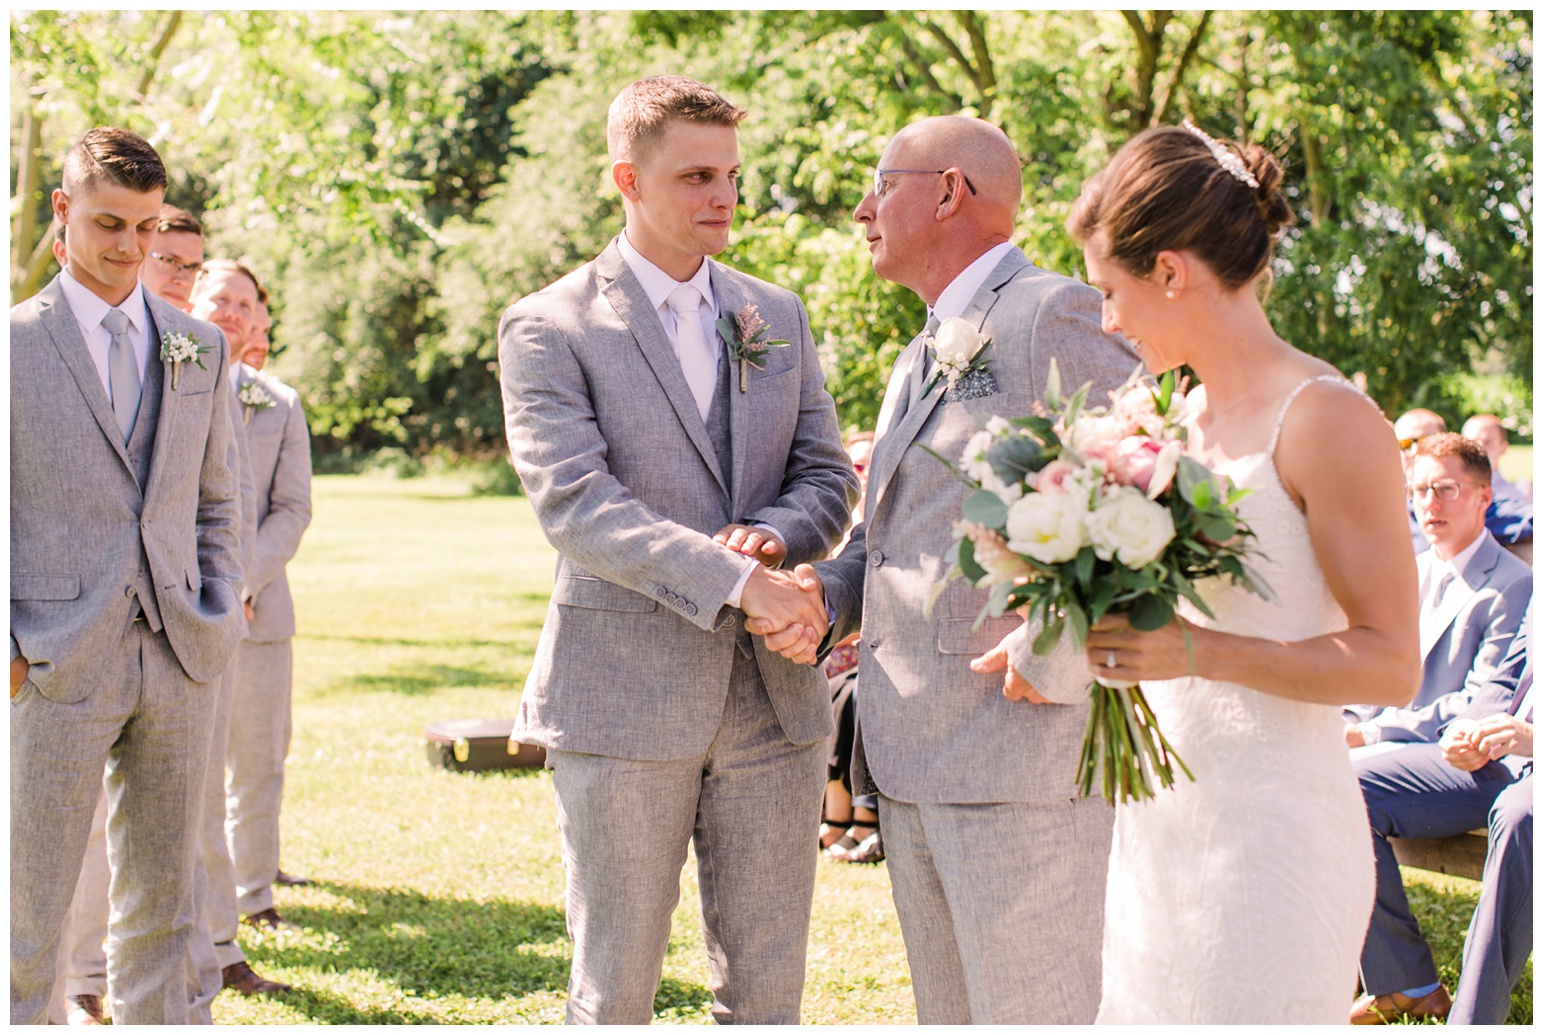 outdoor wedding ceremony photo of father of the bride shaking grooms hand at worsell manor - summer wedding inspiration